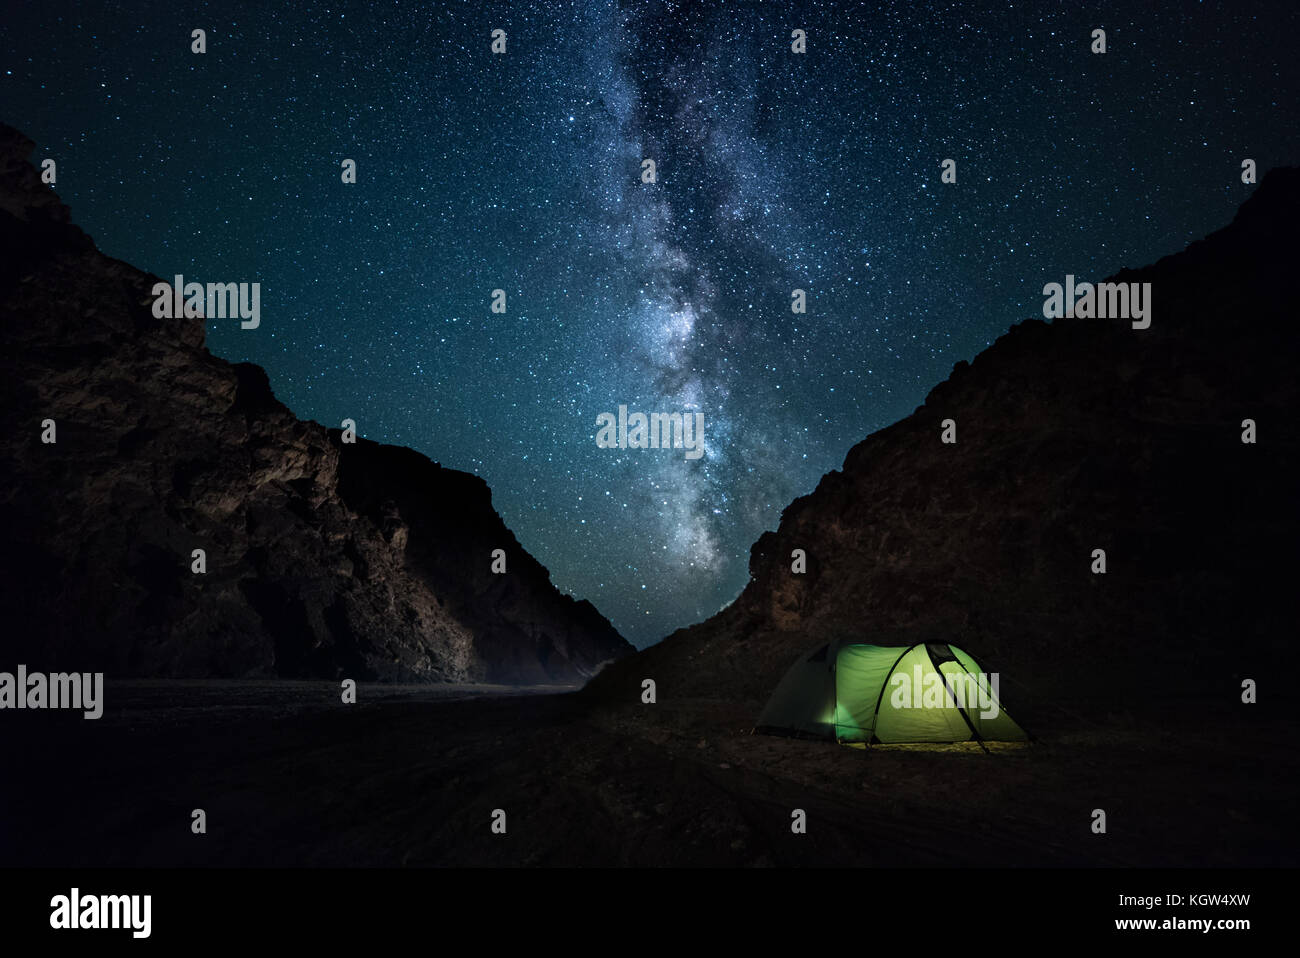 night rocky ravine, starry sky with bright milky way. a little camping - Stock Image